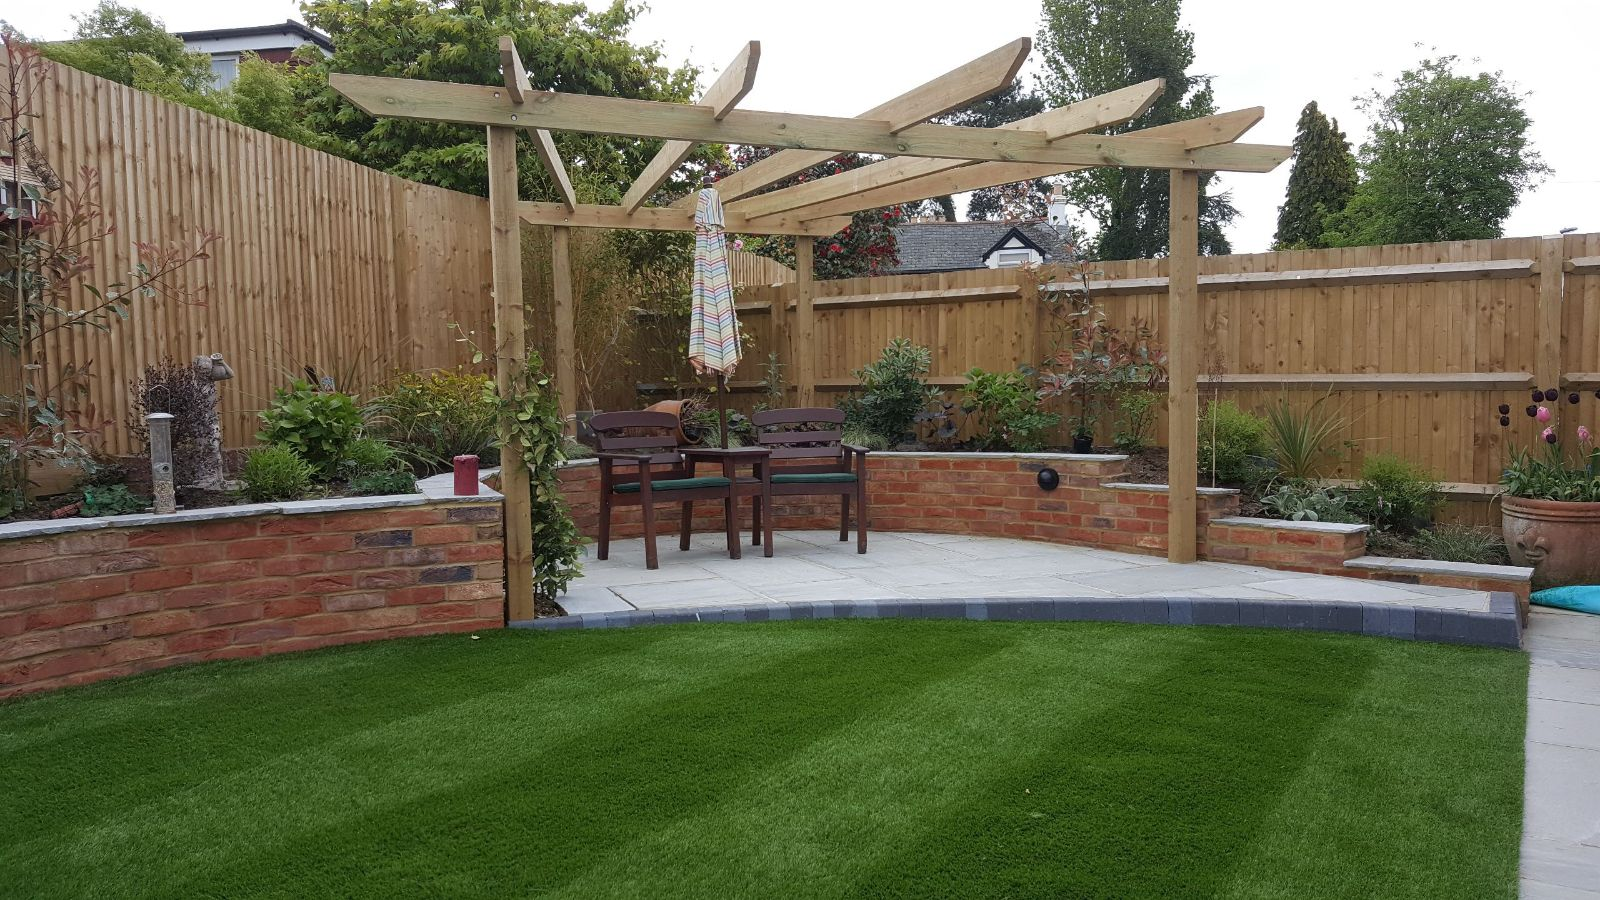 Seating area in new garden with pergola